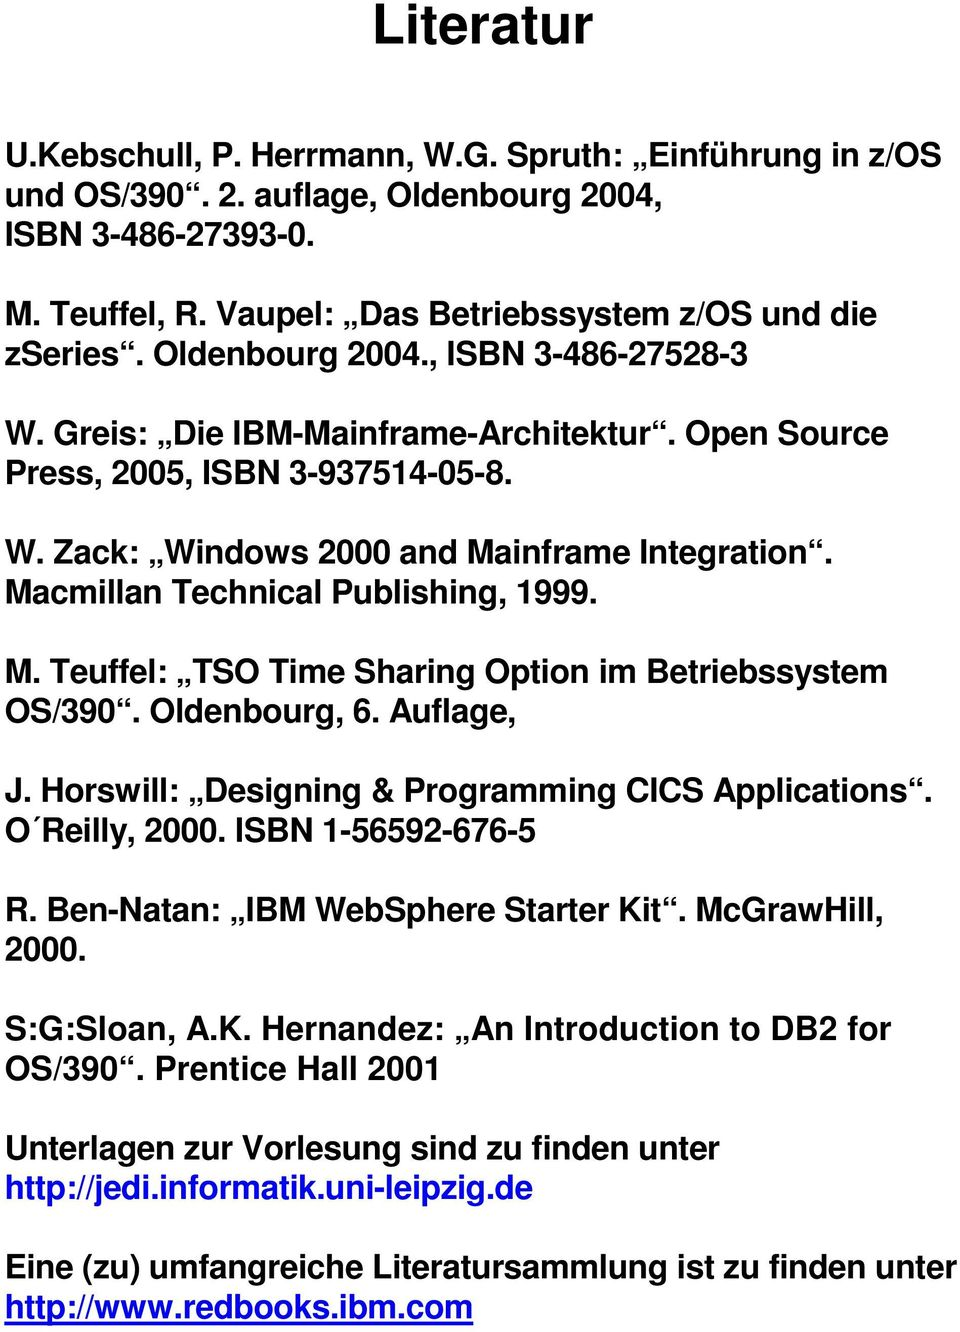 Macmillan Technical Publishing, 1999. M. Teuffel: TSO Time Sharing Option im Betriebssystem OS/390. Oldenbourg, 6. Auflage, J. Horswill: Designing & Programming CICS Applications. O Reilly, 2000.